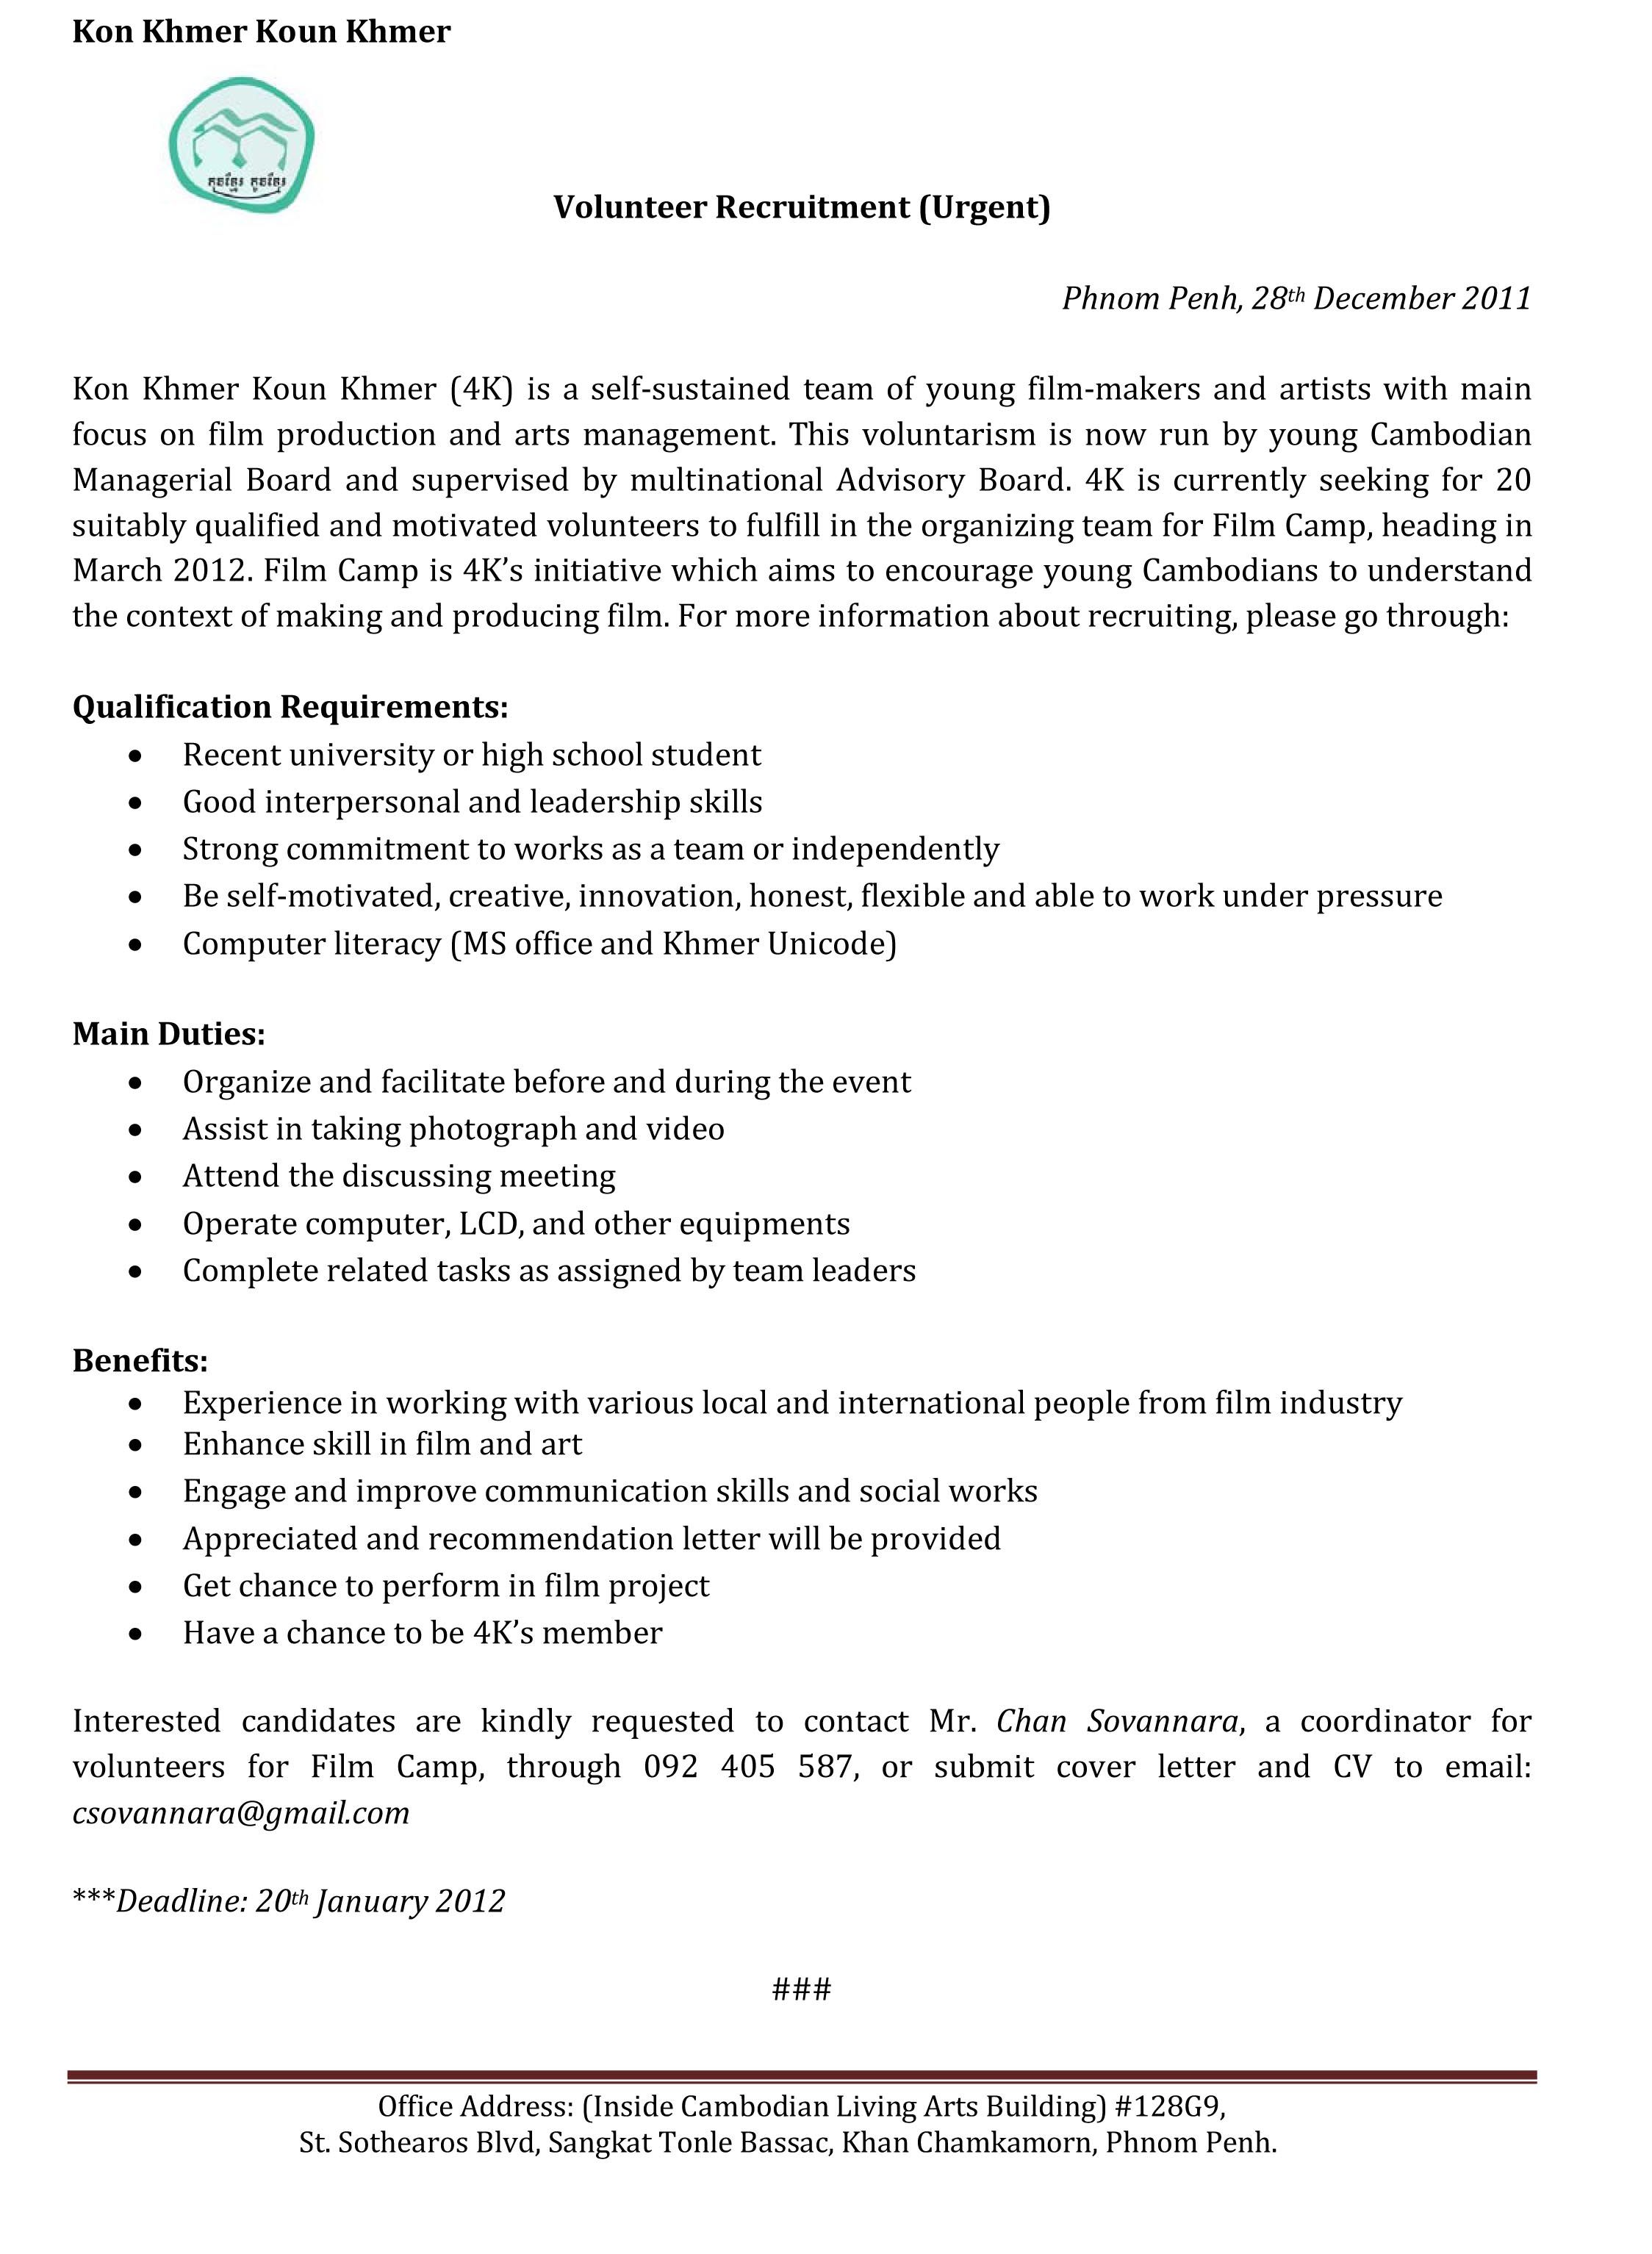 Sample Application Letter For Volunteer Position CollegeVolunteer Template